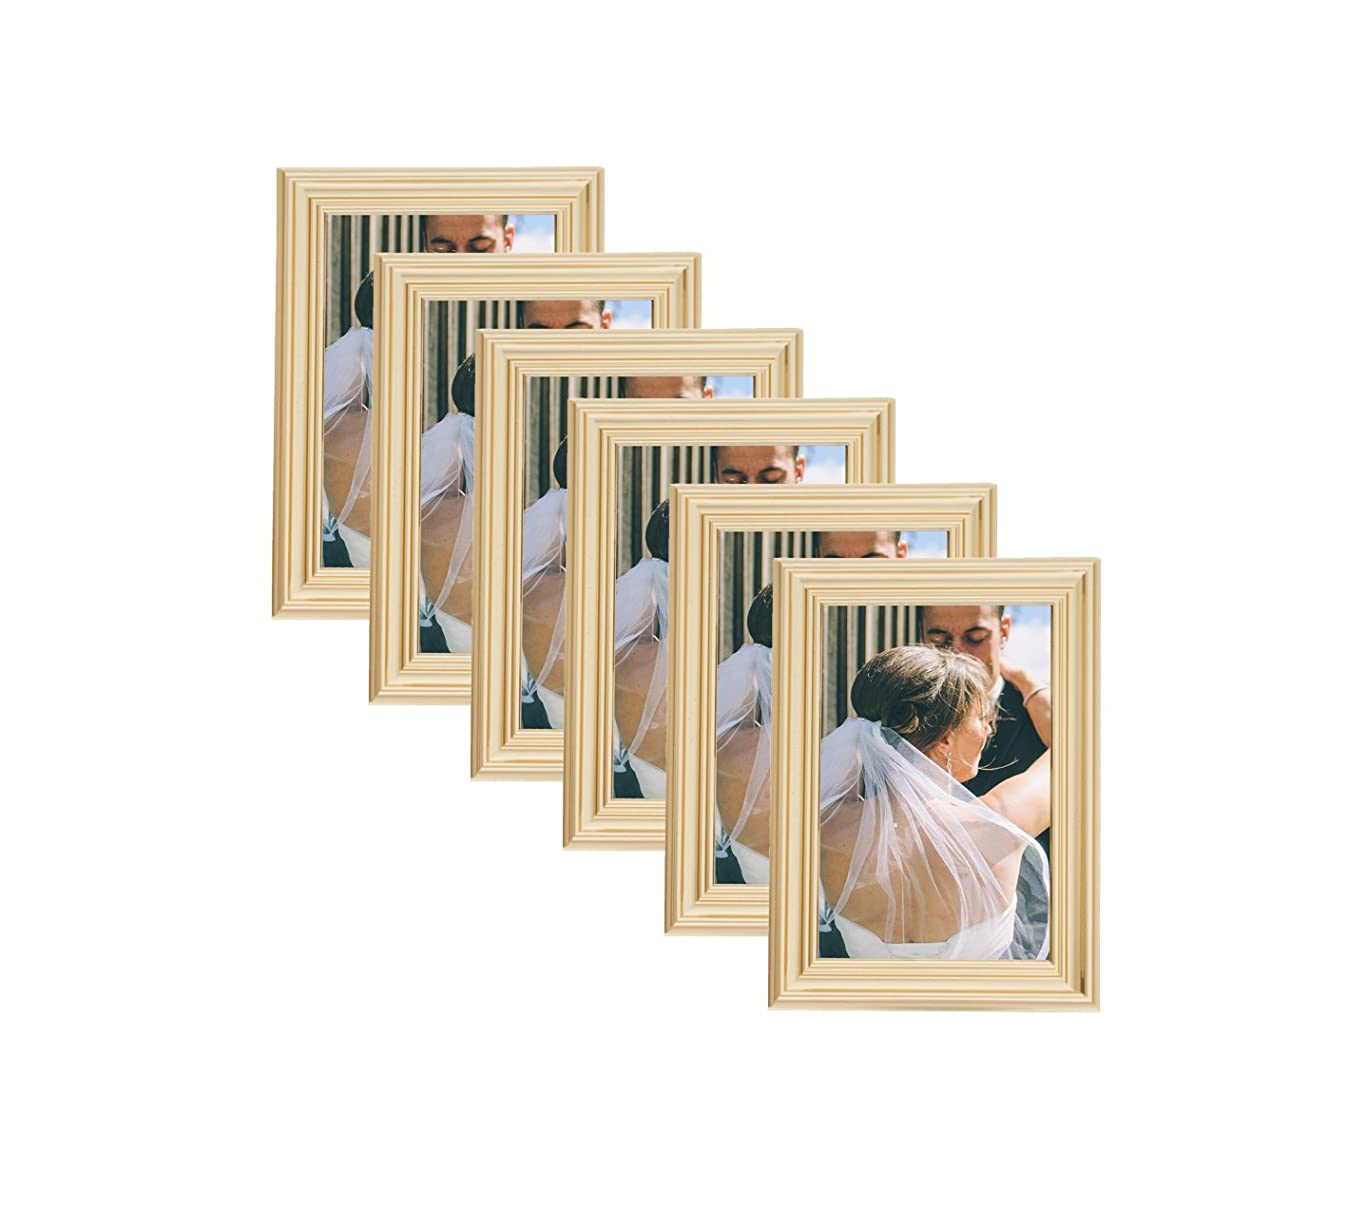 Plated Gold Picture Frames (6 pc) Display with Photo Glass Front, Easel Back, Hanging Clip (Set of 6, 4x6)